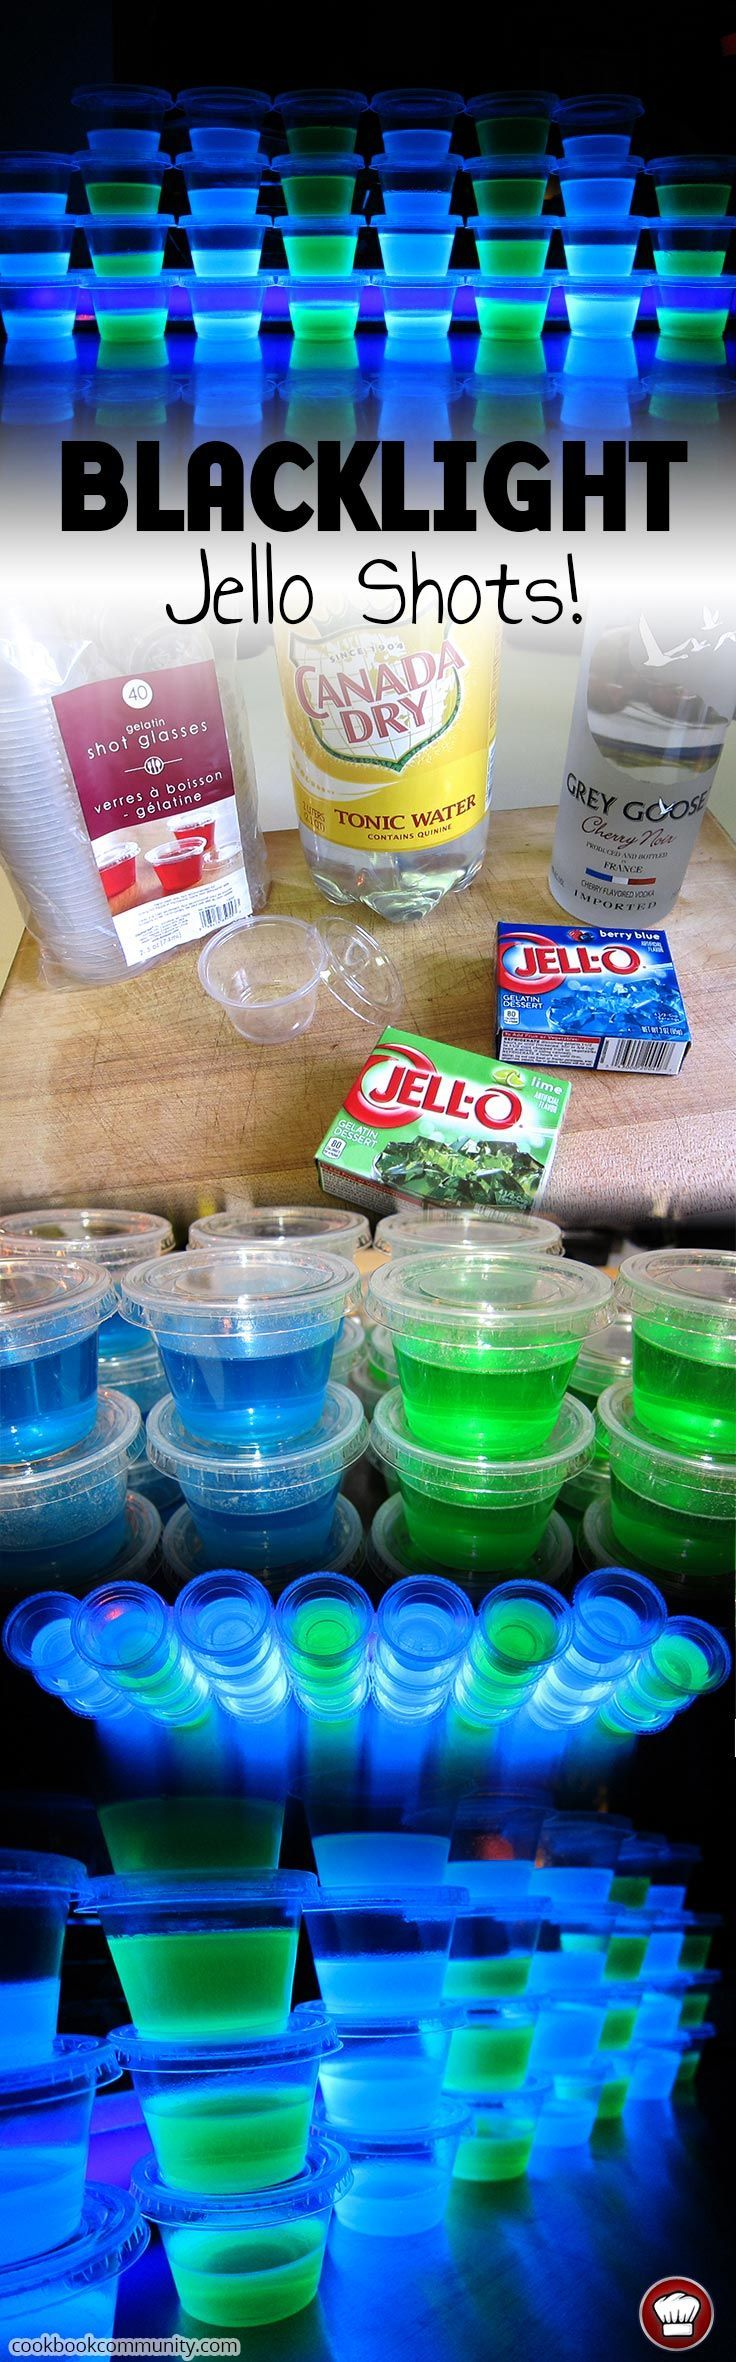 Glow in the Dark Blacklight Jello Shots Recipe - http://centophobe.com/glow-in-the-dark-blacklight-jello-shots-recipe/ -